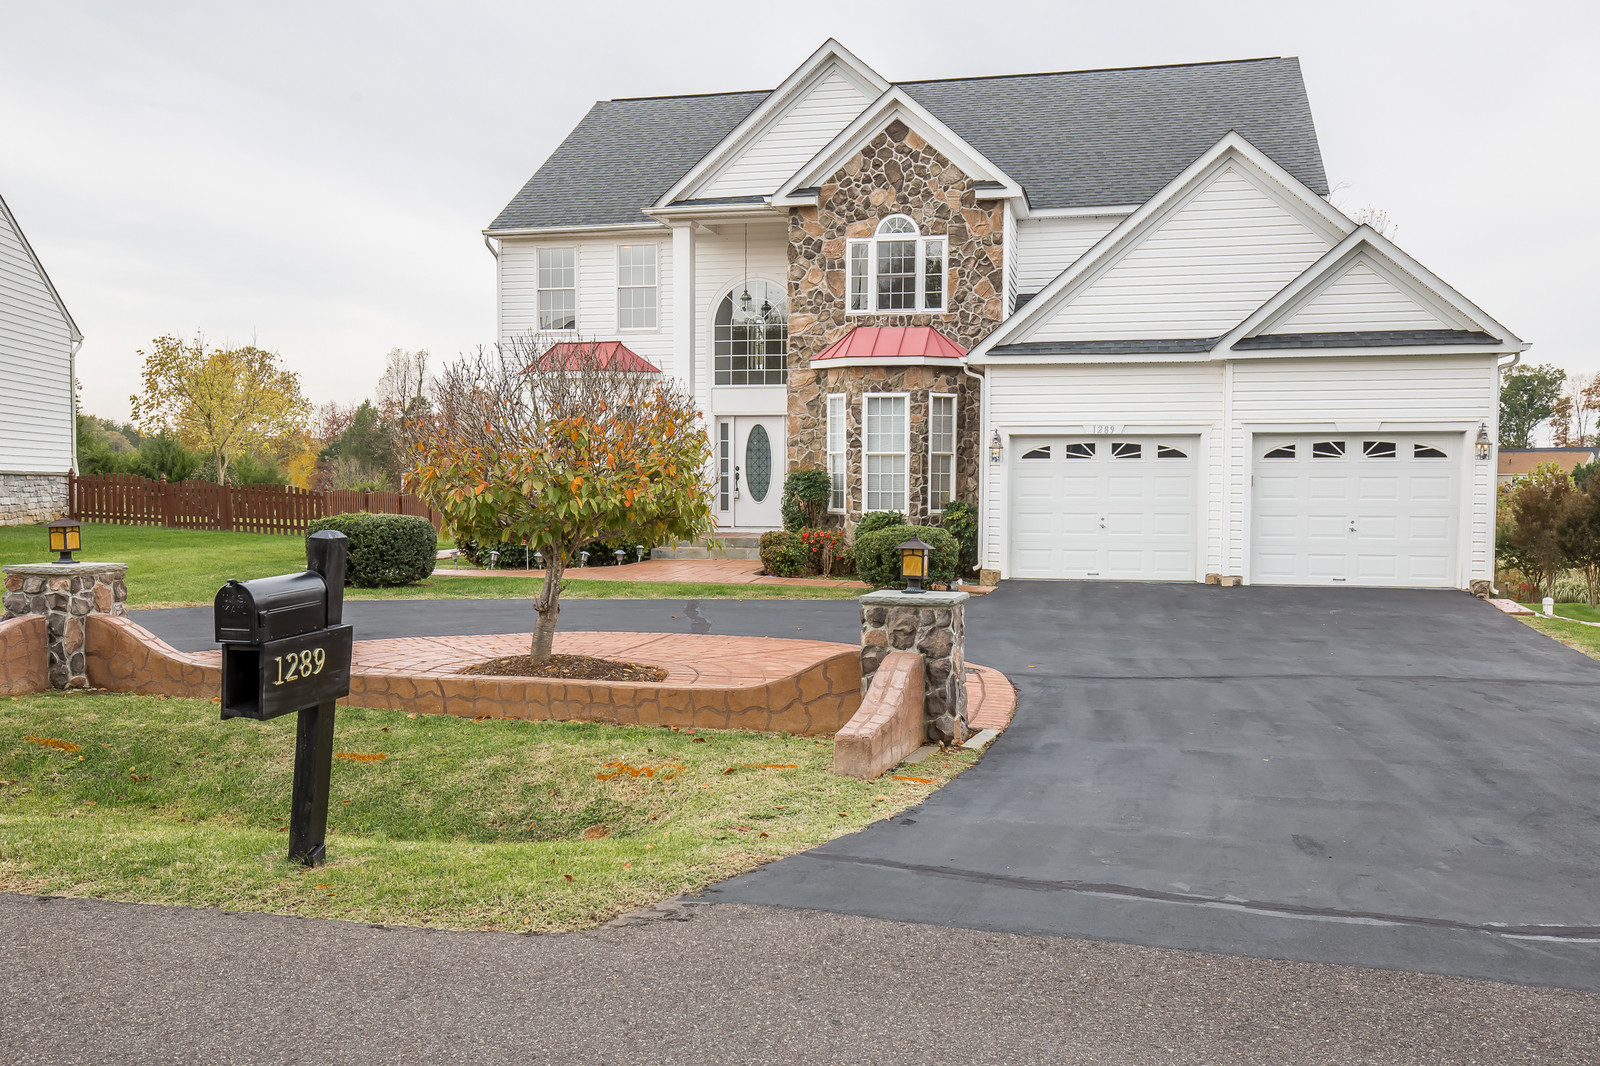 Home of the Week: Over $100,000 in Upgrades in Locust Grove